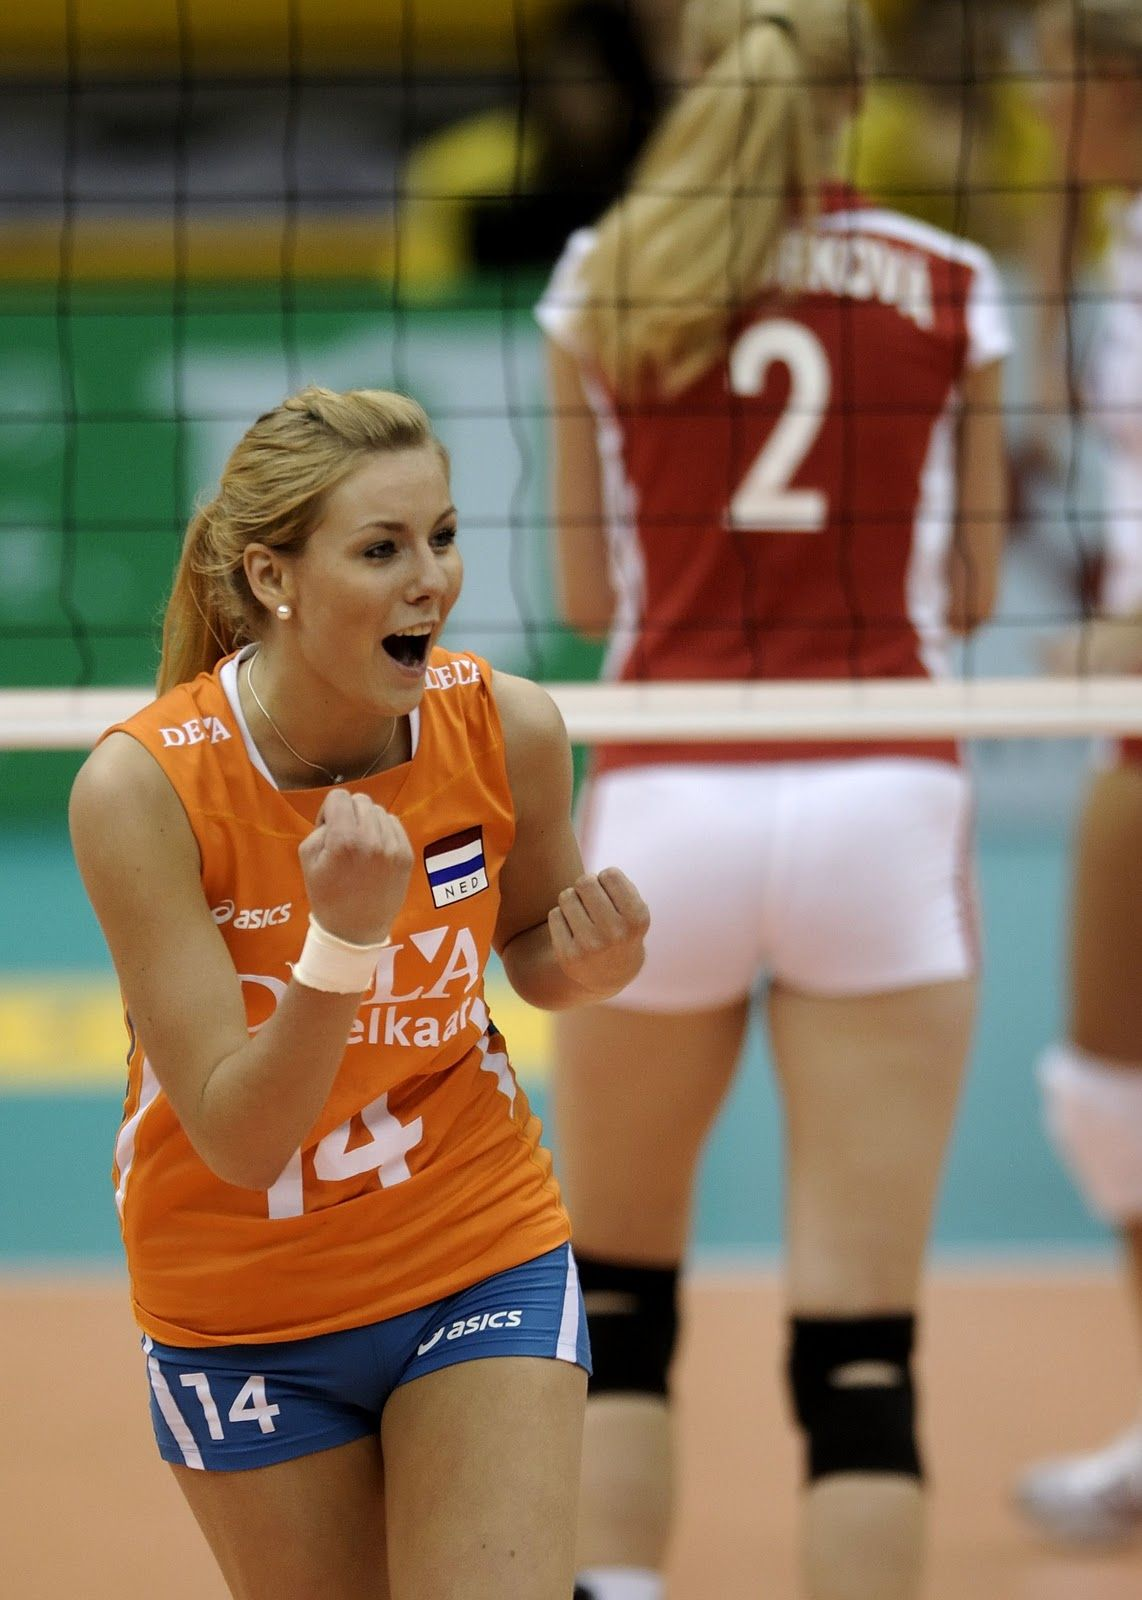 Laura Dijkema Volleyball Player Setter Netherlands Team And Halkbank Ankara Turkey Volleybal Olympische Spelen Meisjes